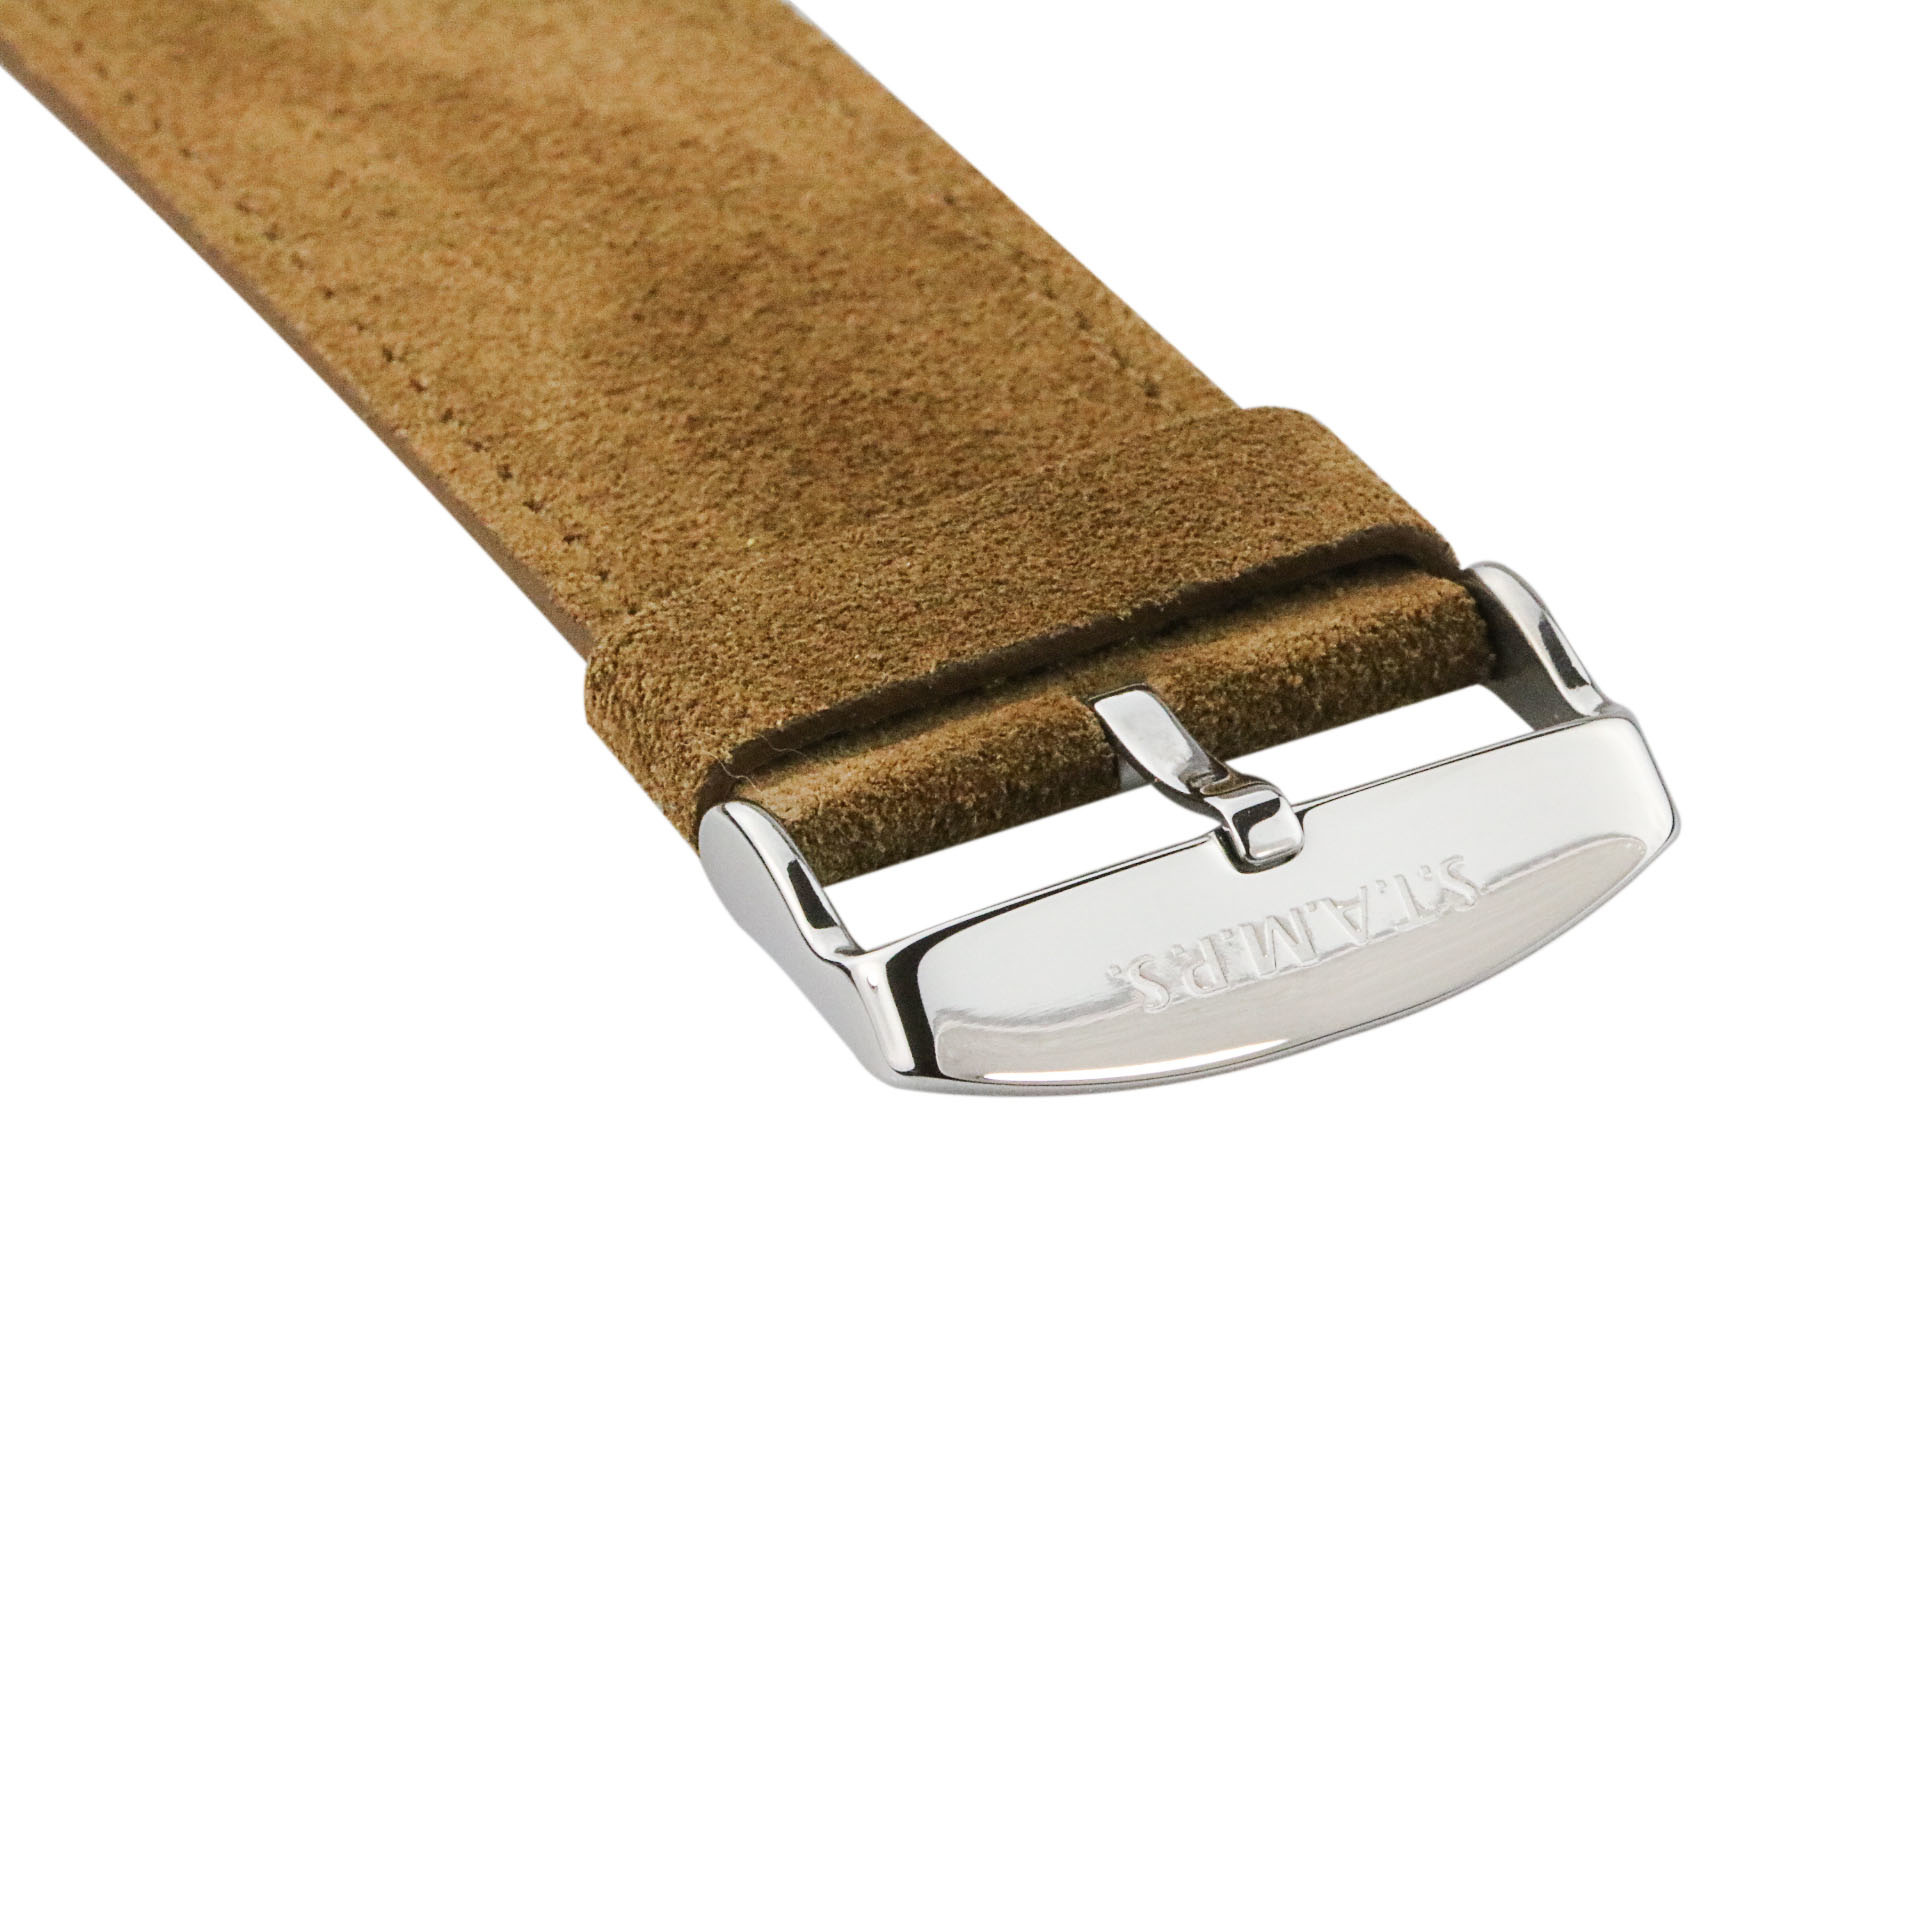 S.T.A.M.P.S Horlogeband Wild Leather brown